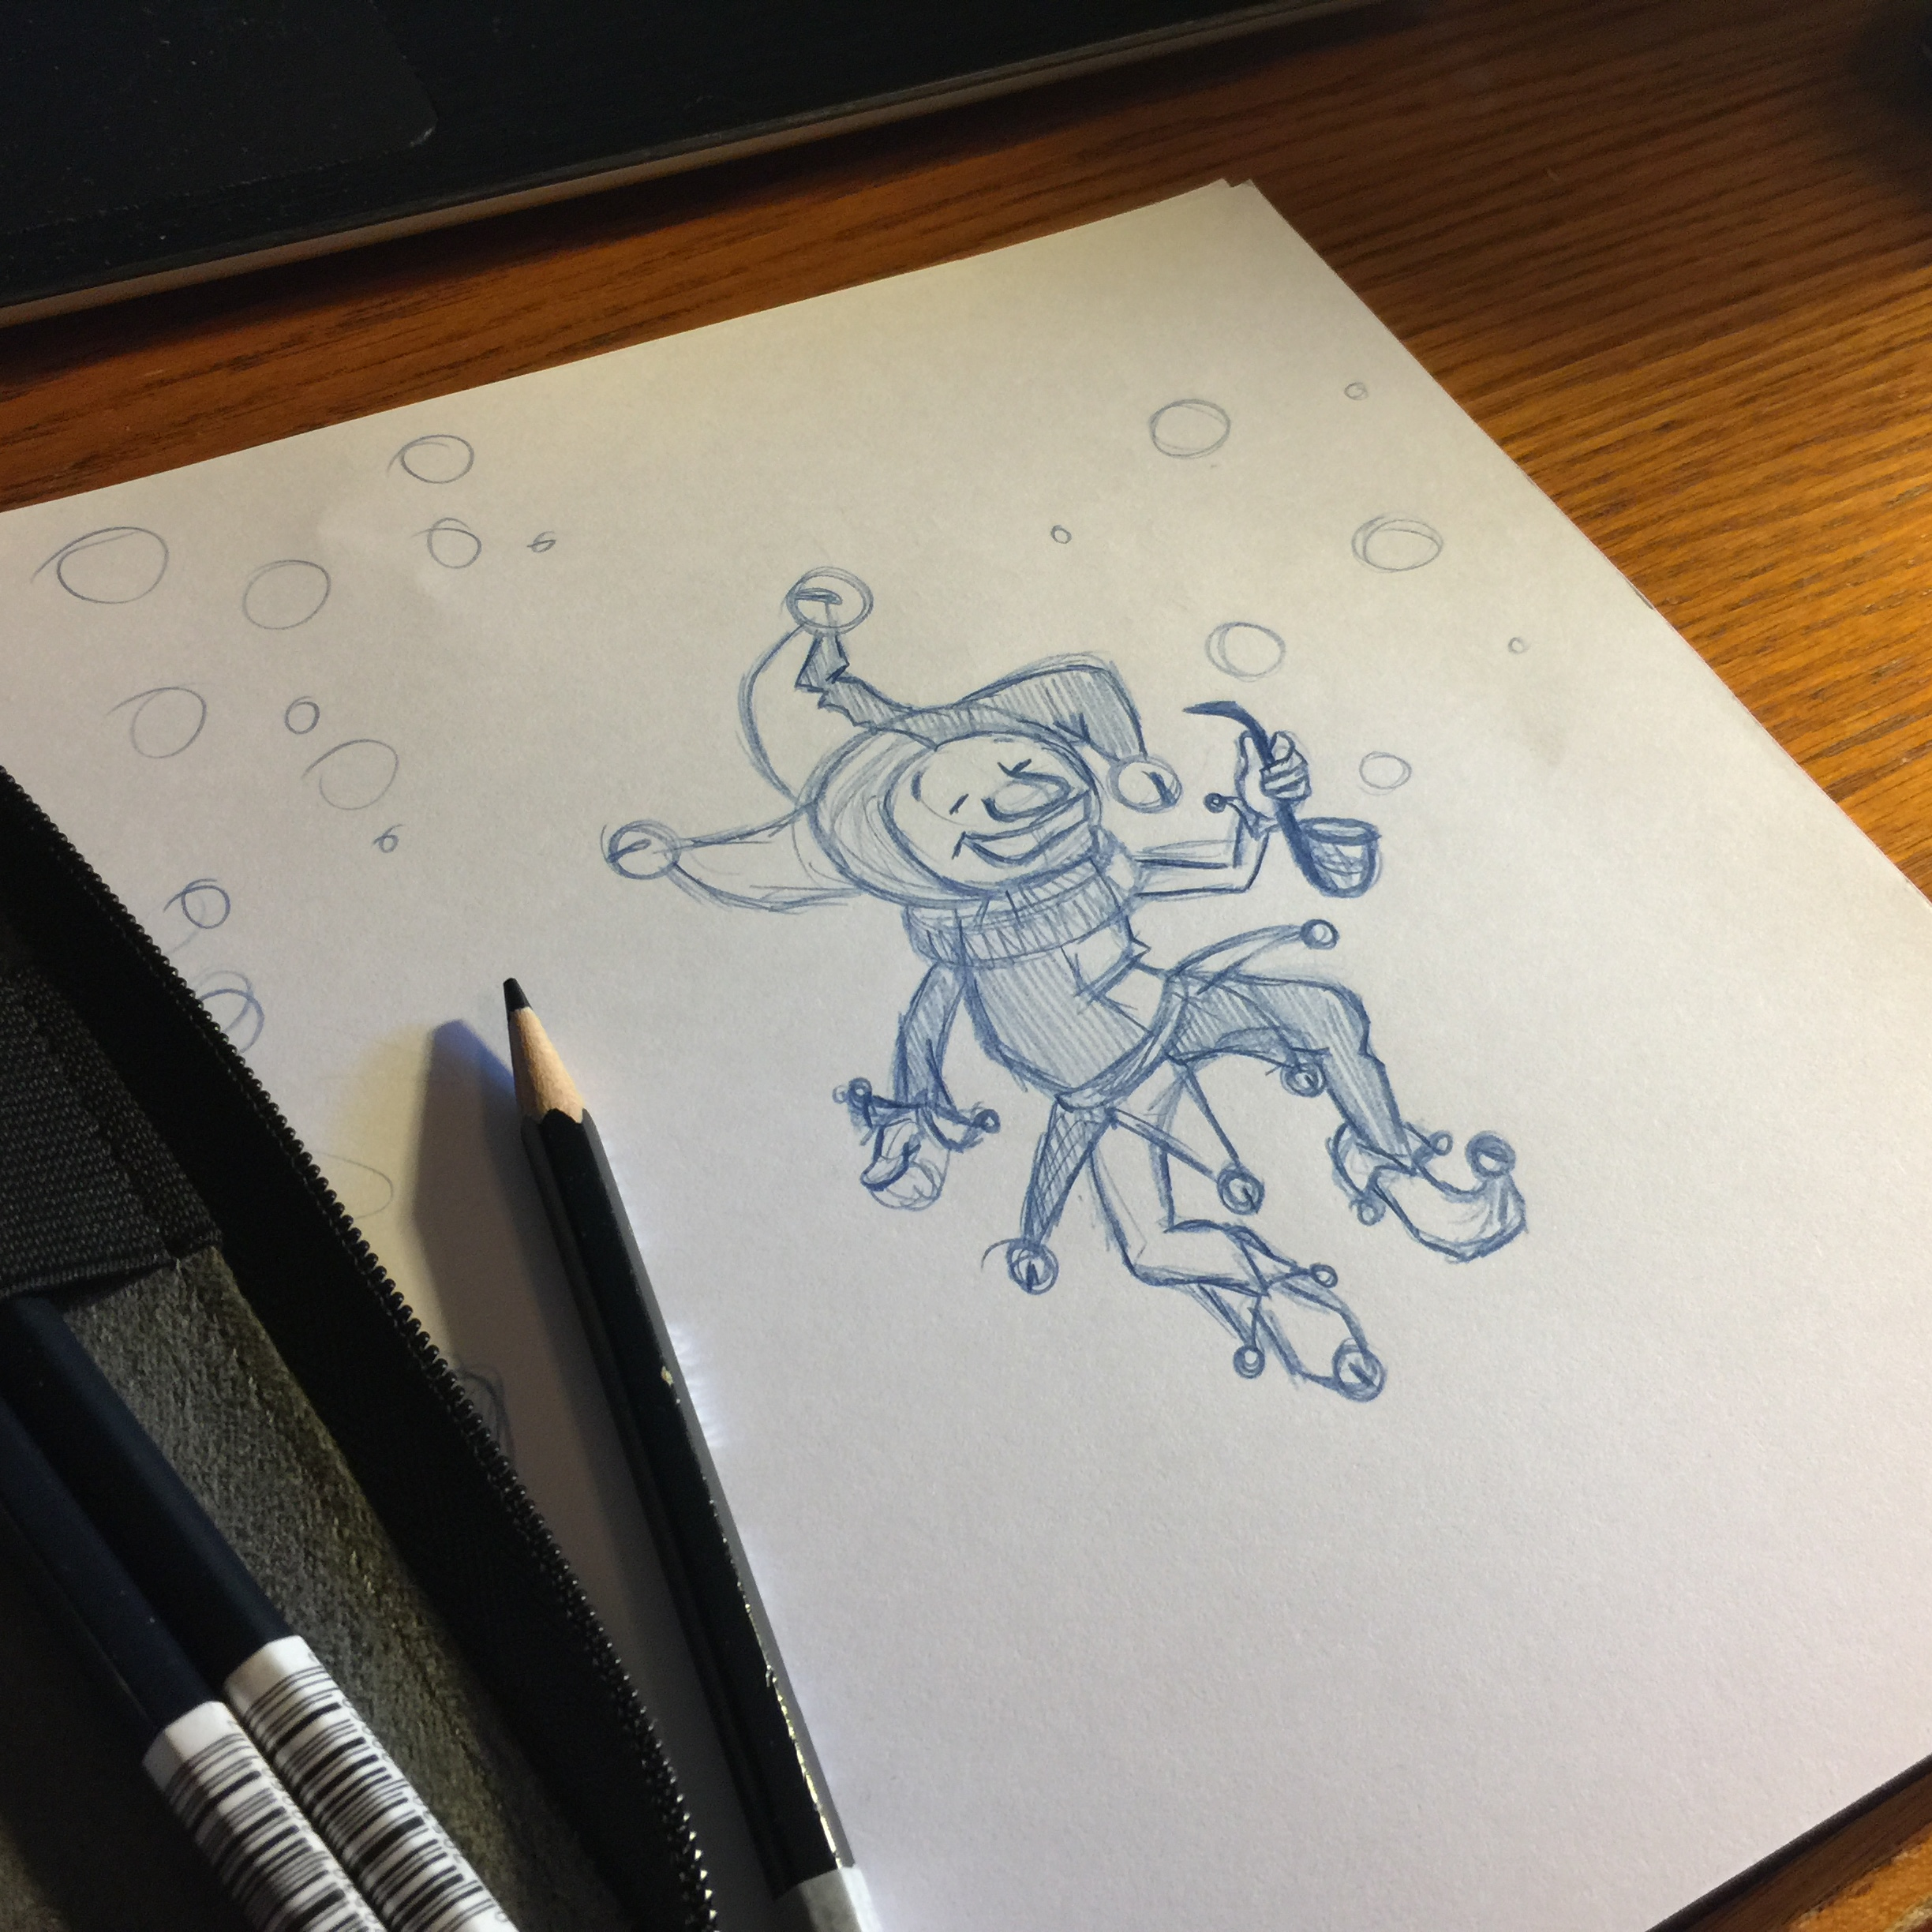 Pencil sketch of jester with bubble pipe.